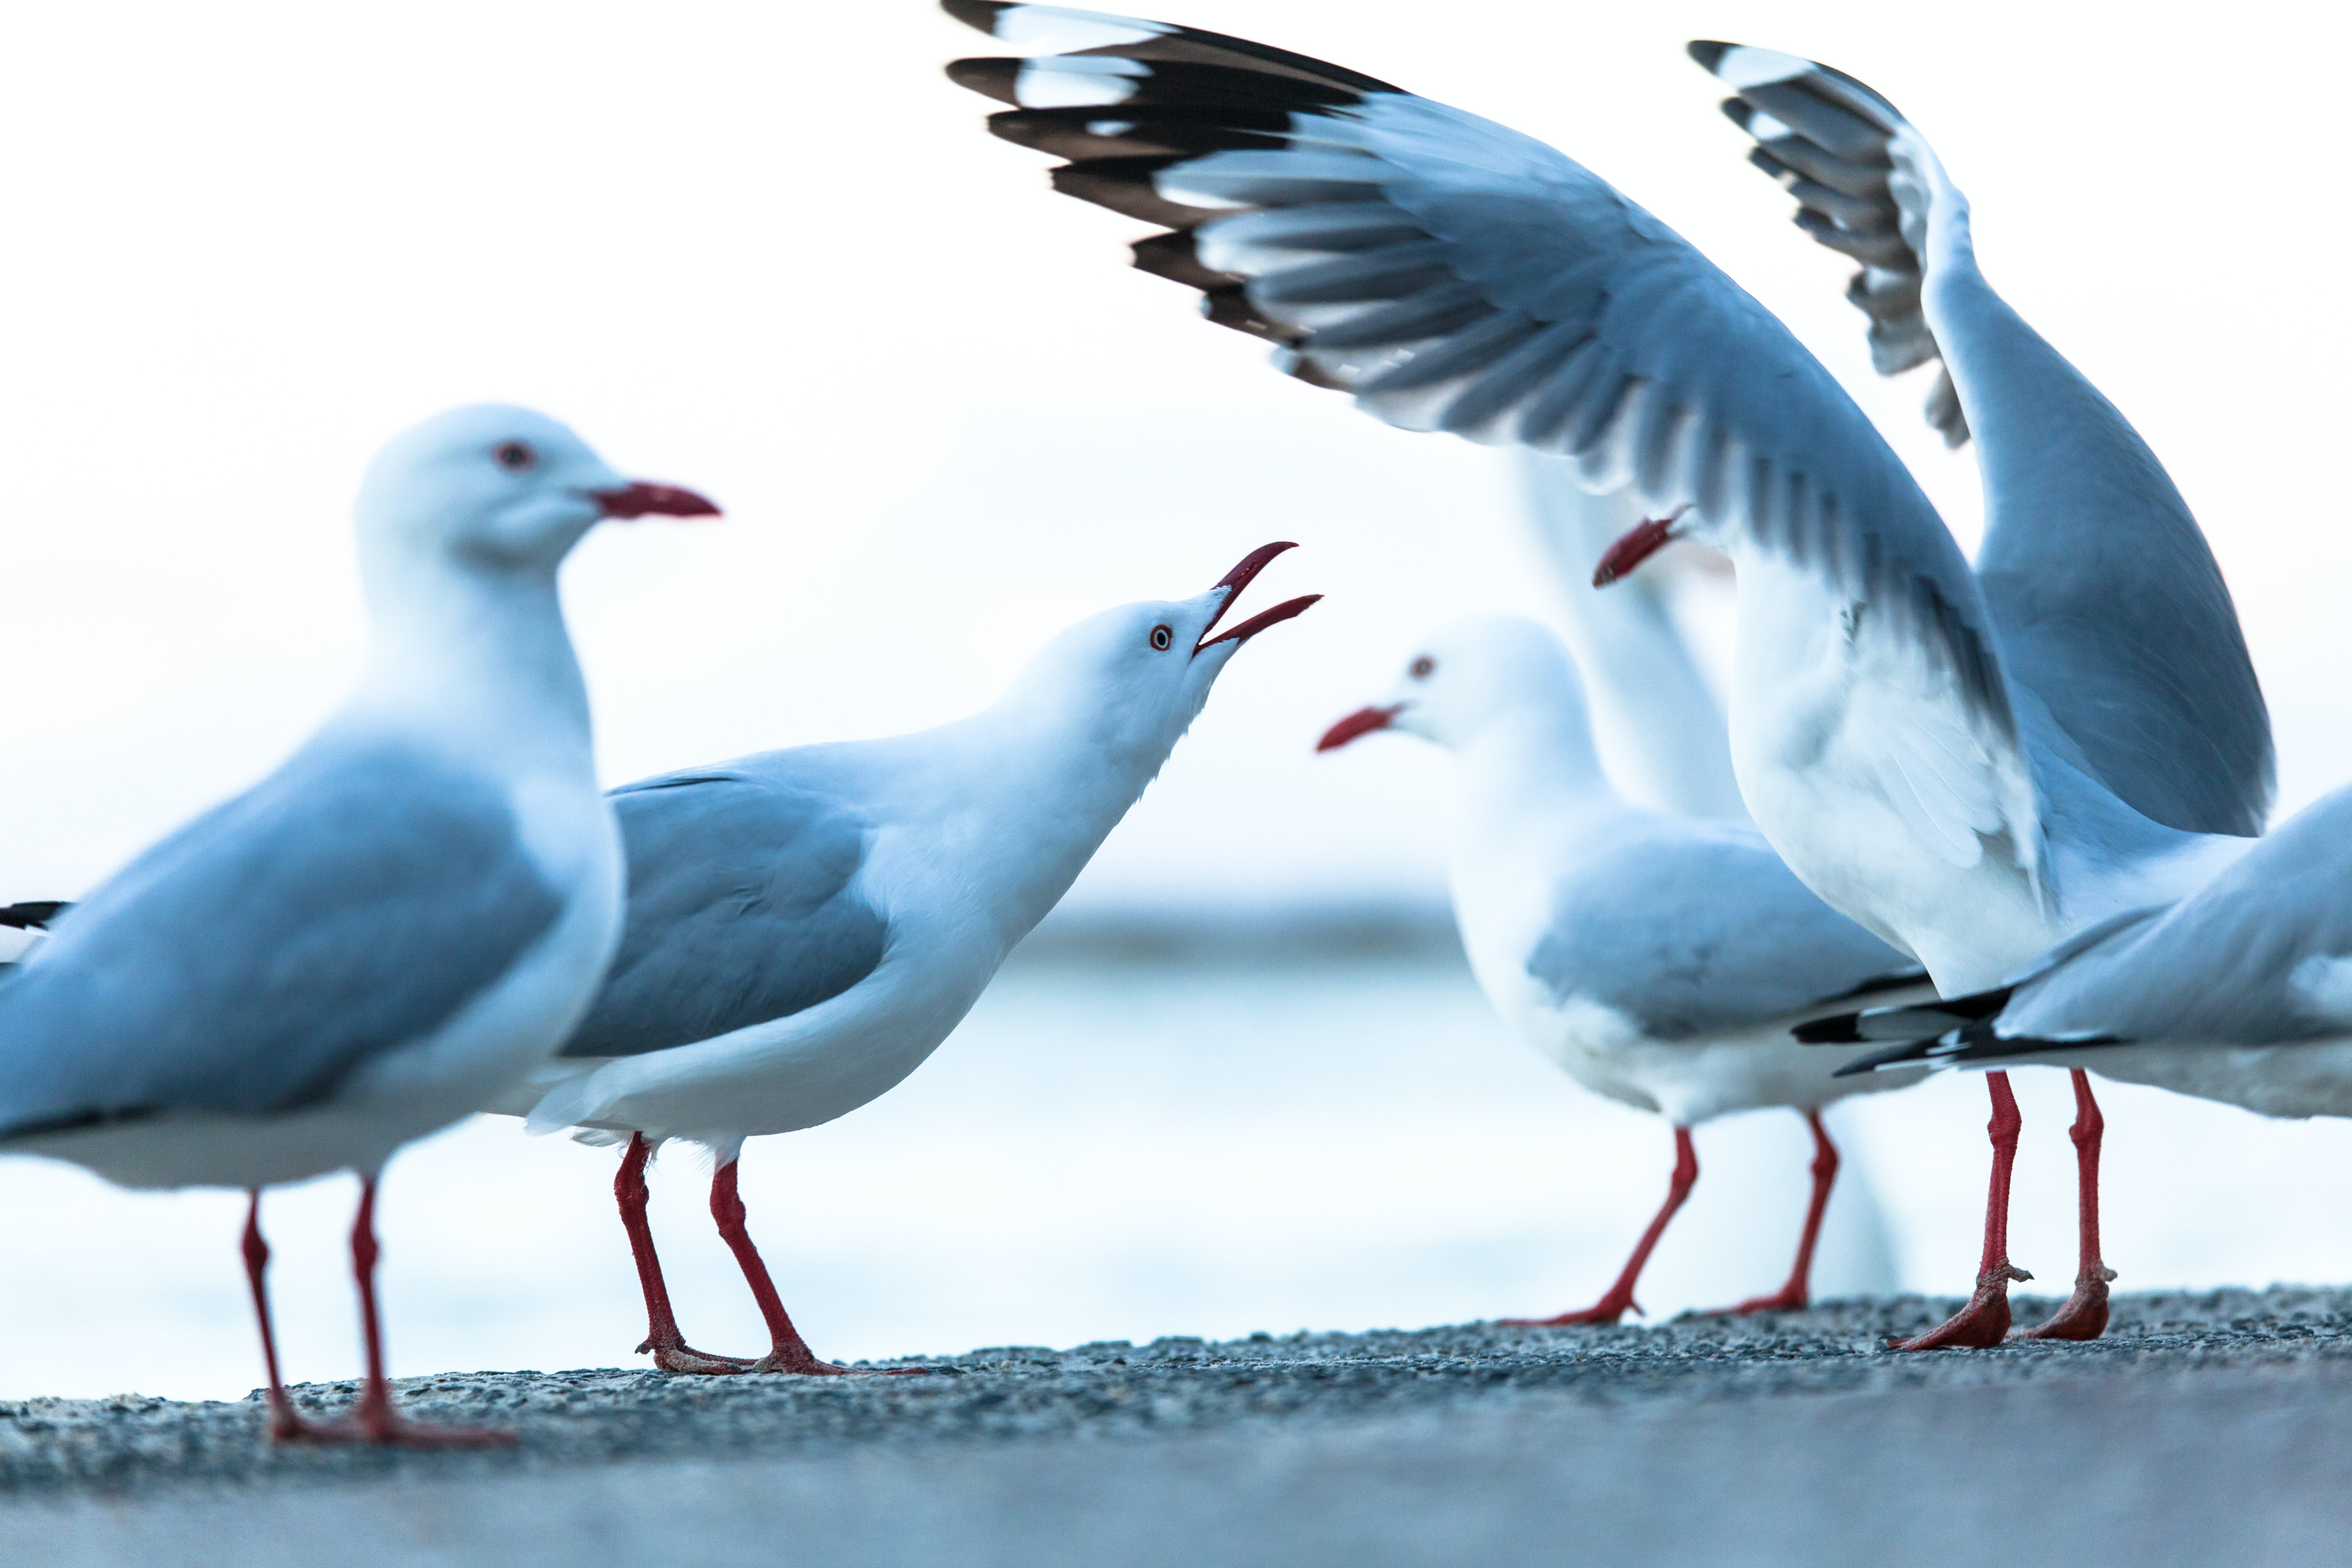 flock of white-and-gray seagull on gray concrete floor